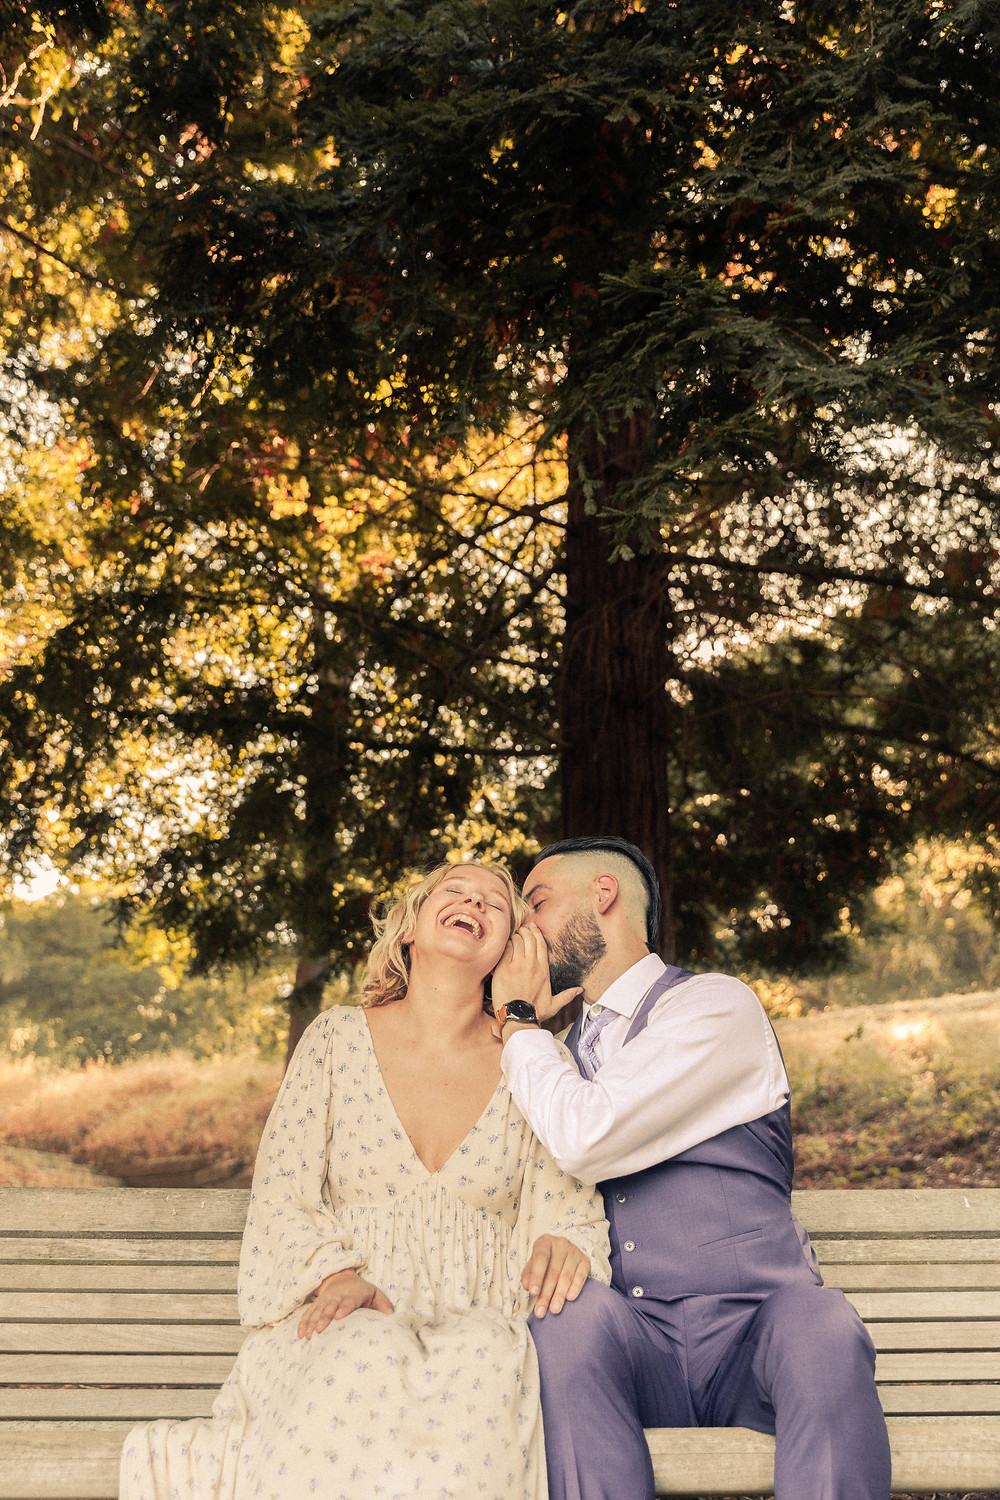 Just the Little Things Photos   Engagement Session   Wedding   Photography   Lafayette   Bay Area   California   Photo Booth